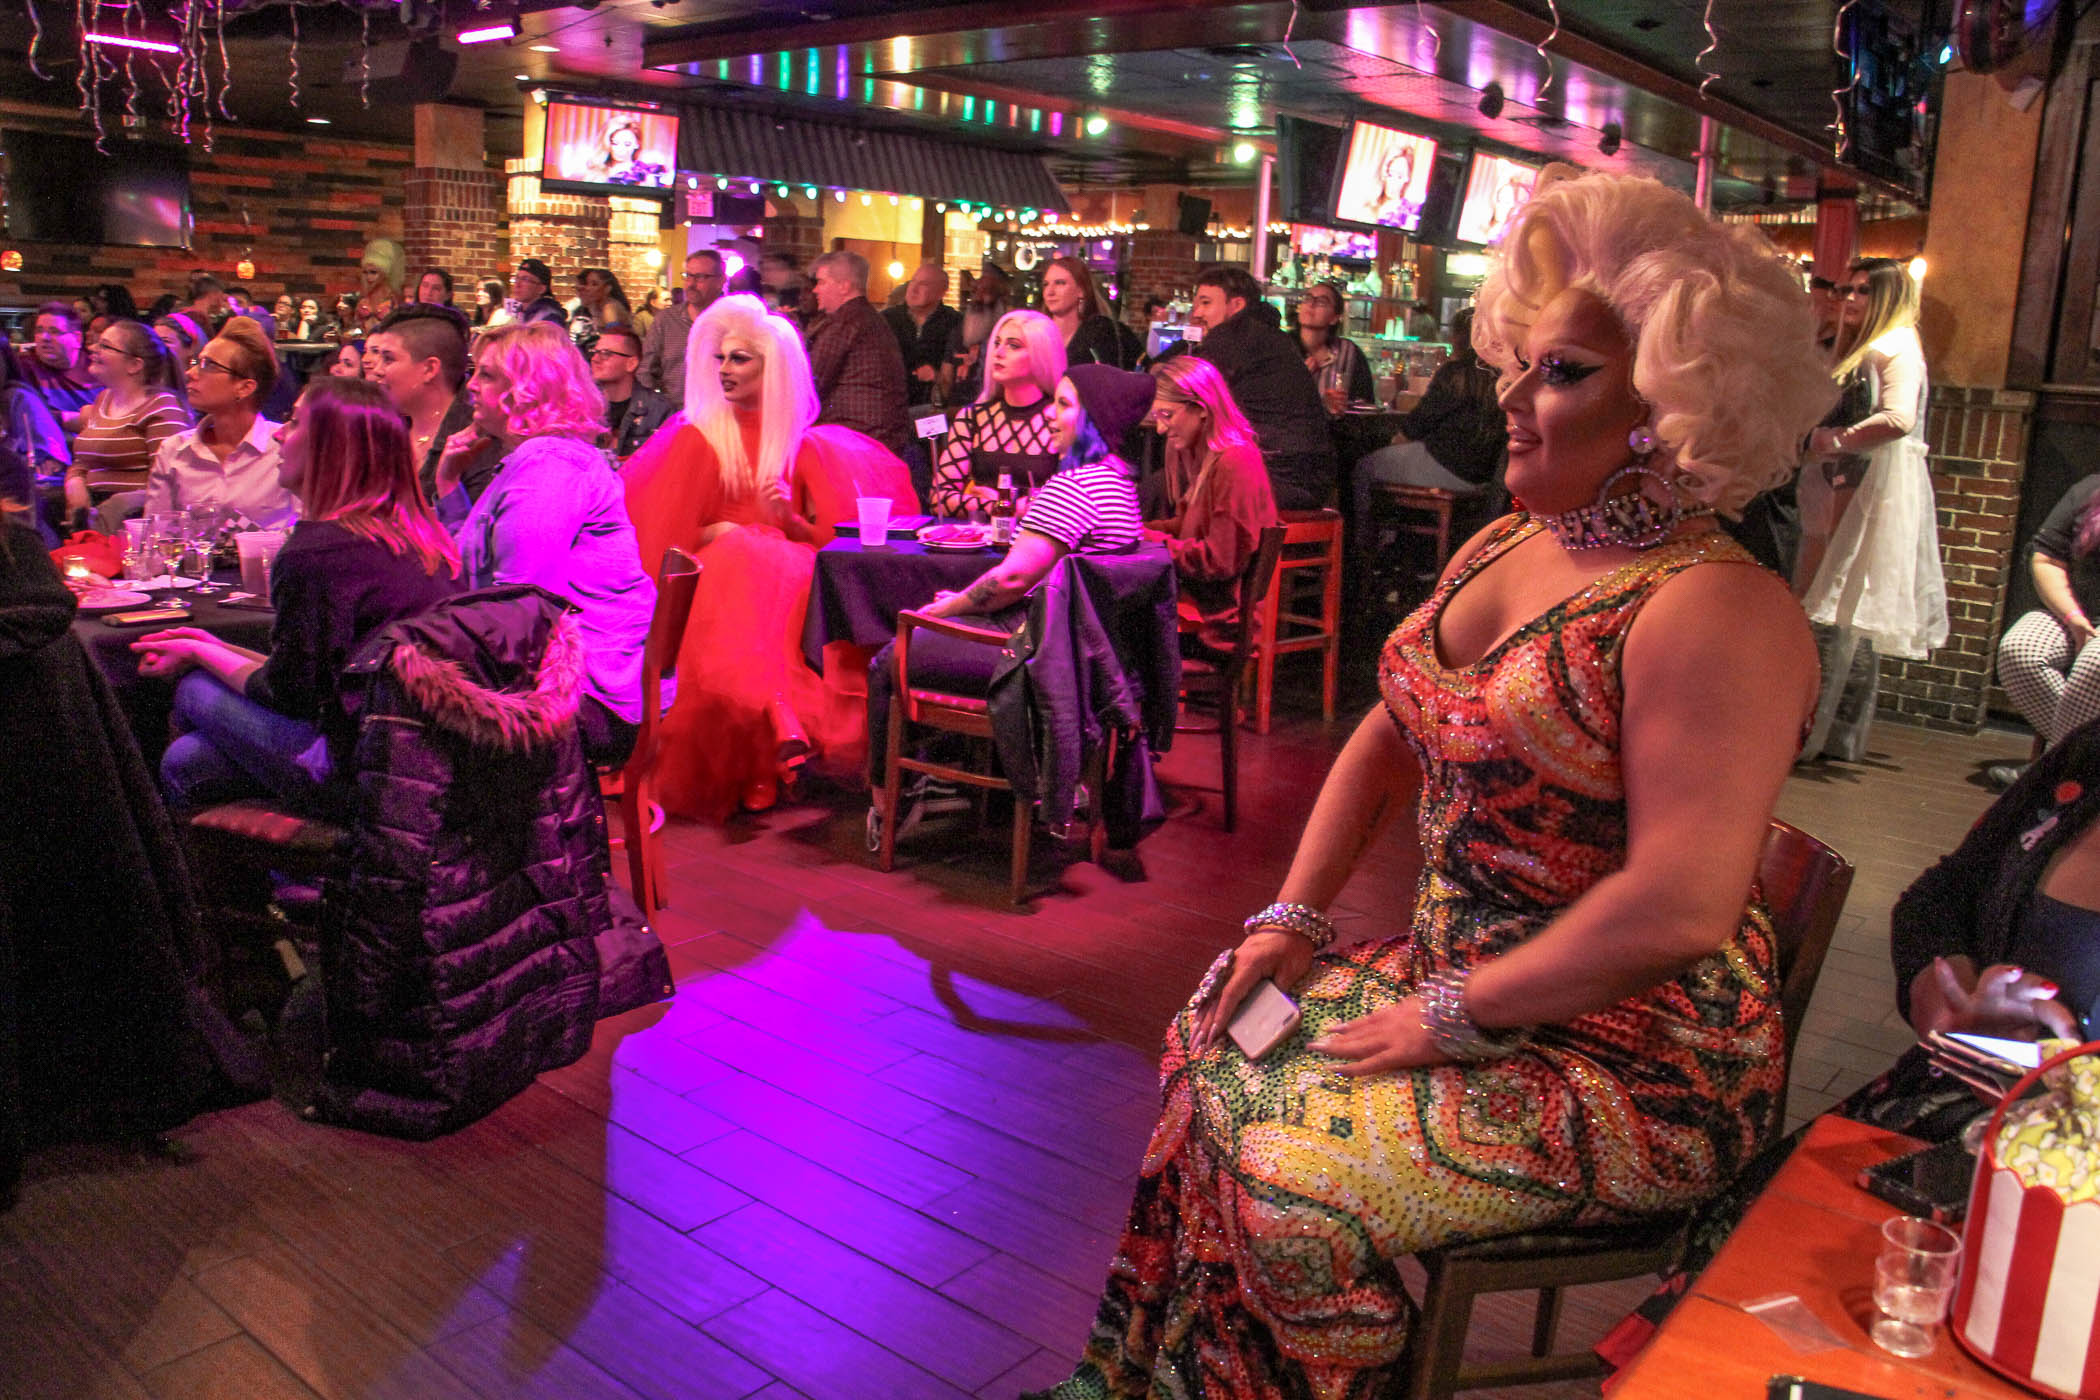 Fans of RuPaul's Drag Race pack Vera's Bar and Grill in Cherry Hill to watch the show's season opener, which featured Cherry Hill native Ariel Versace.